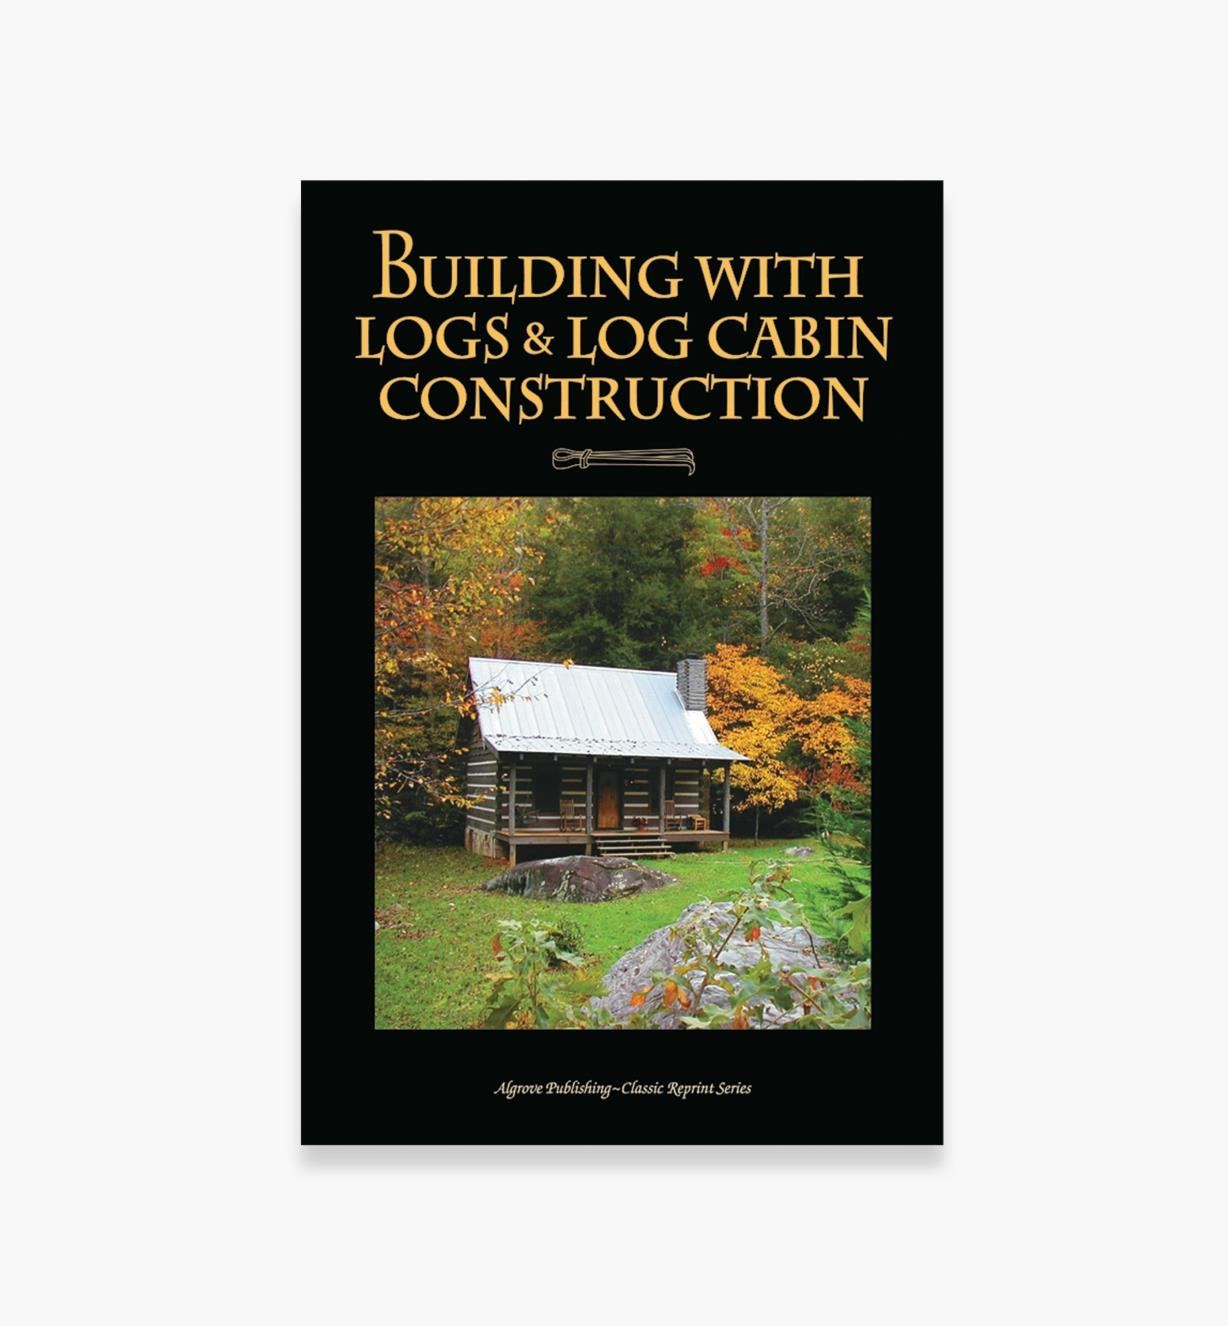 49L8112 - Building with Logs & Log Cabin Construction